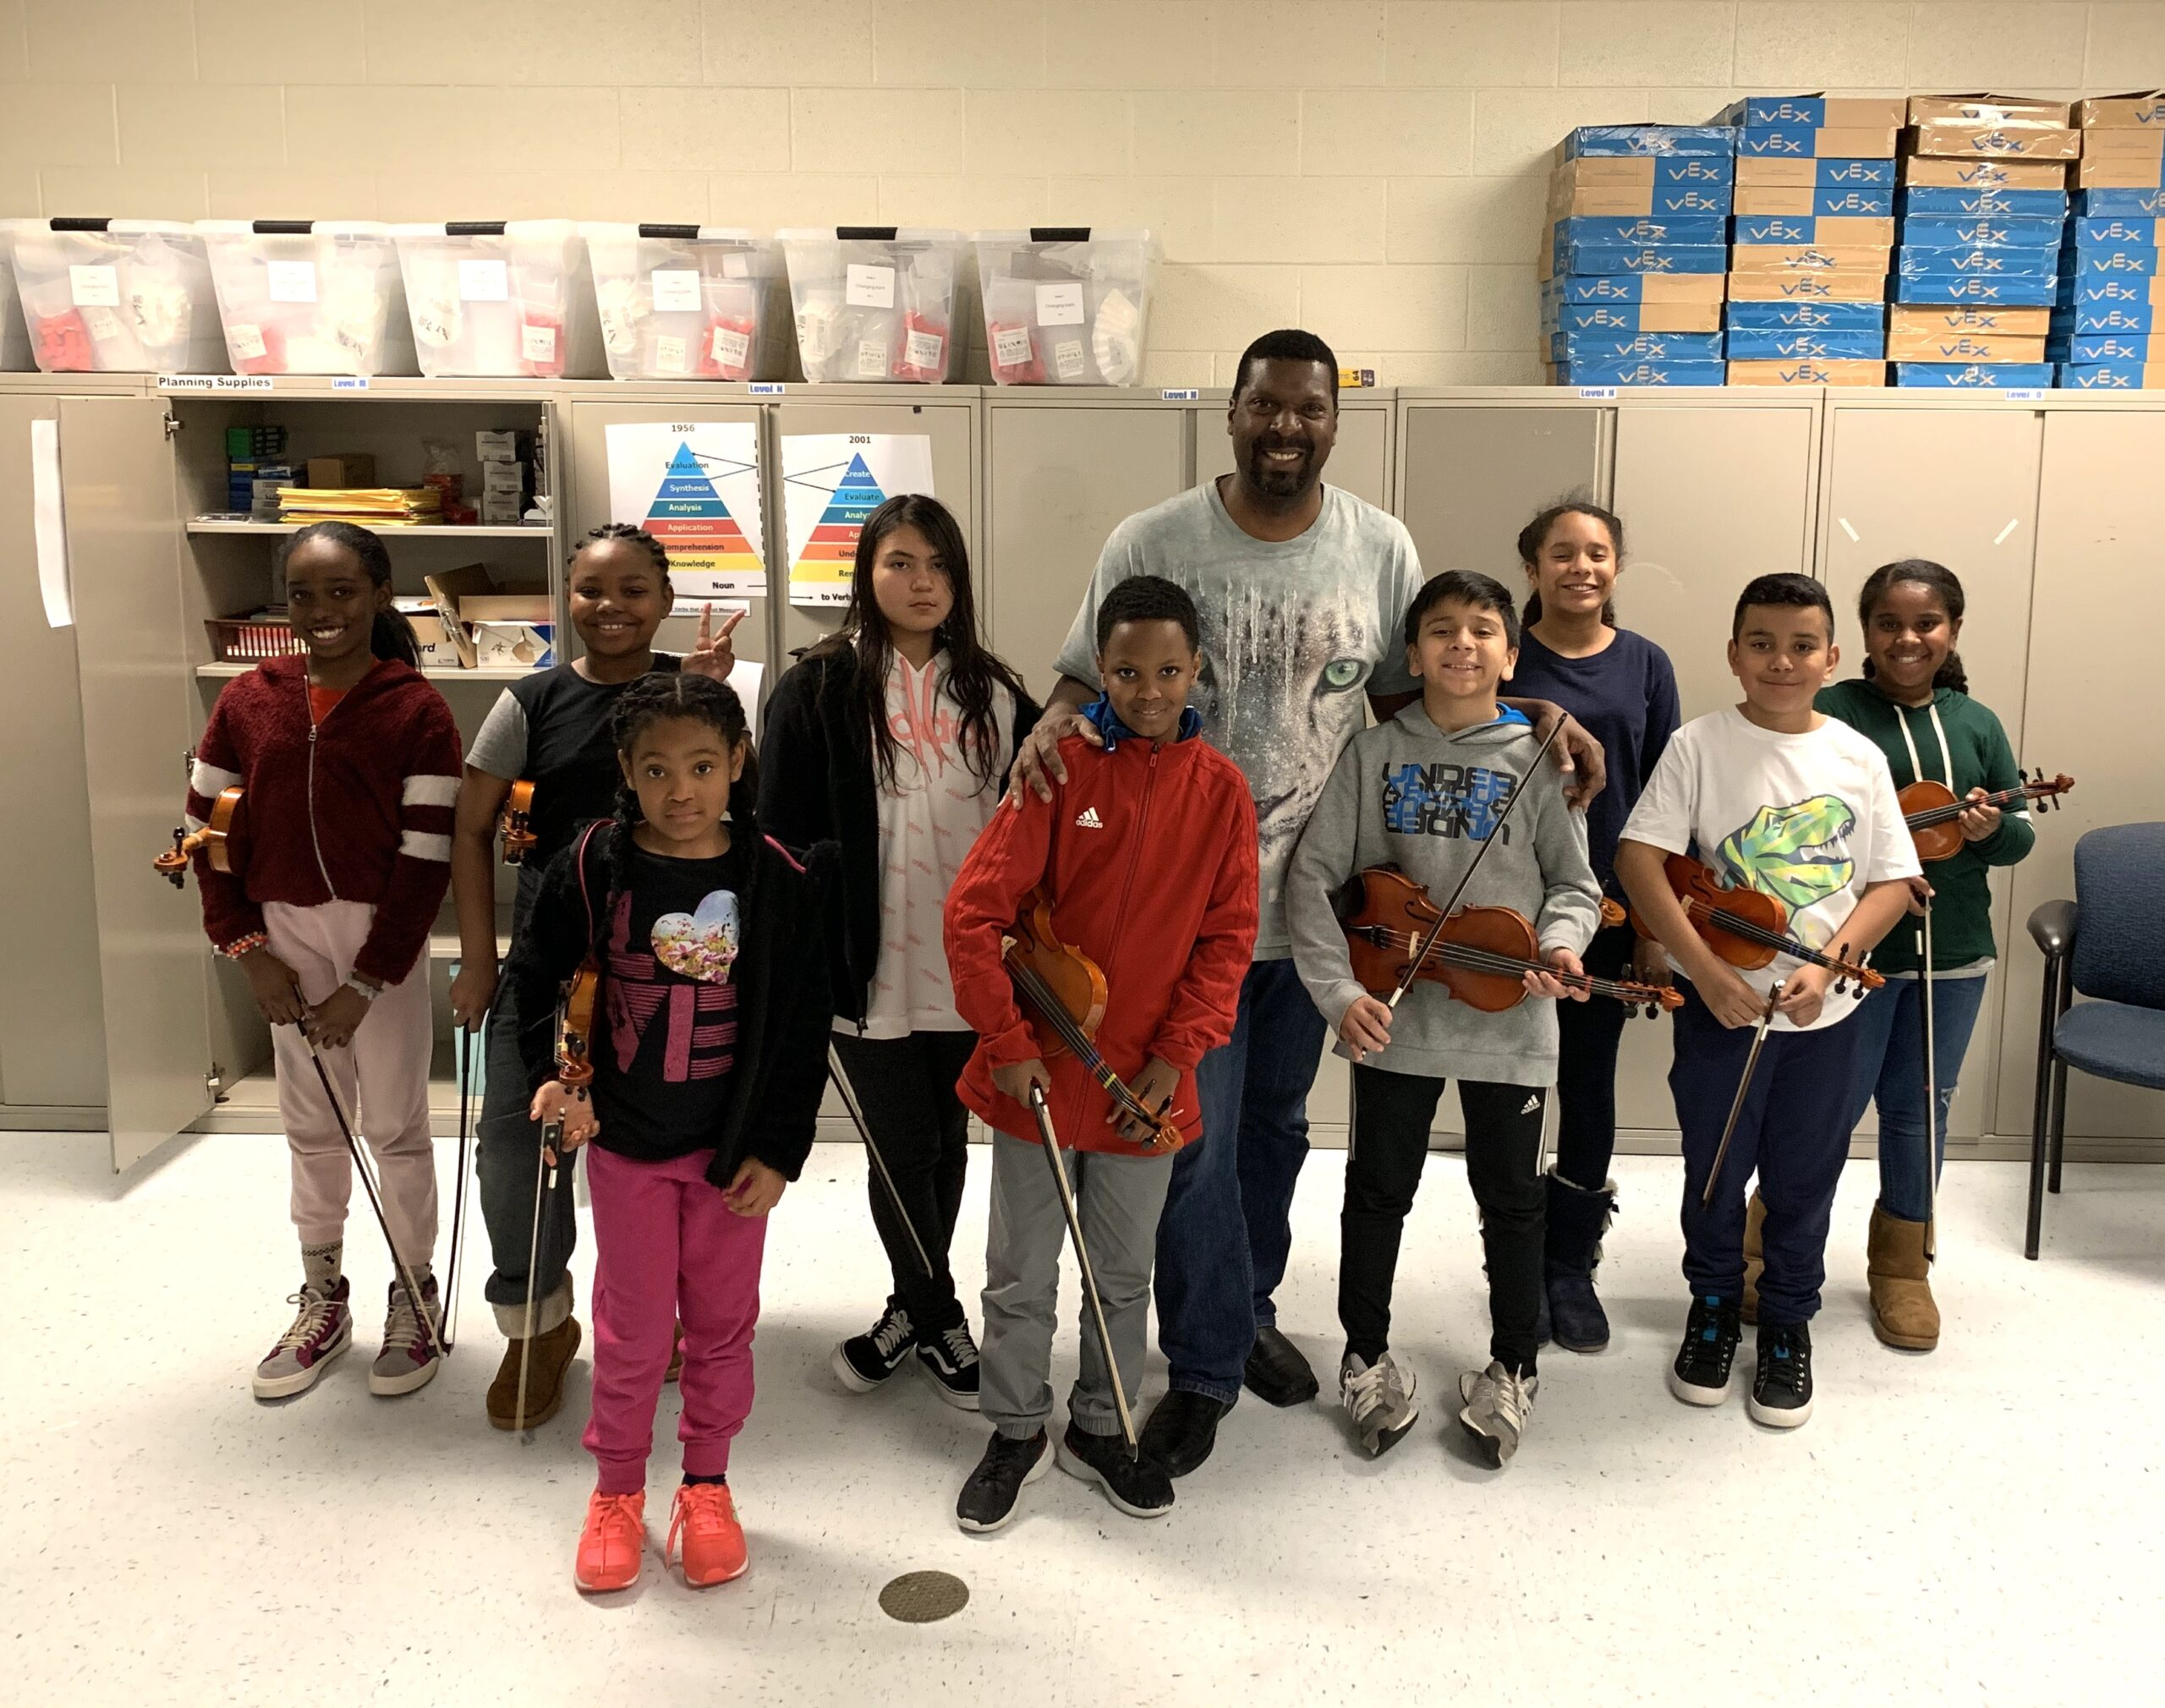 Amadi teaches a violin class for the Tapestry Music Program